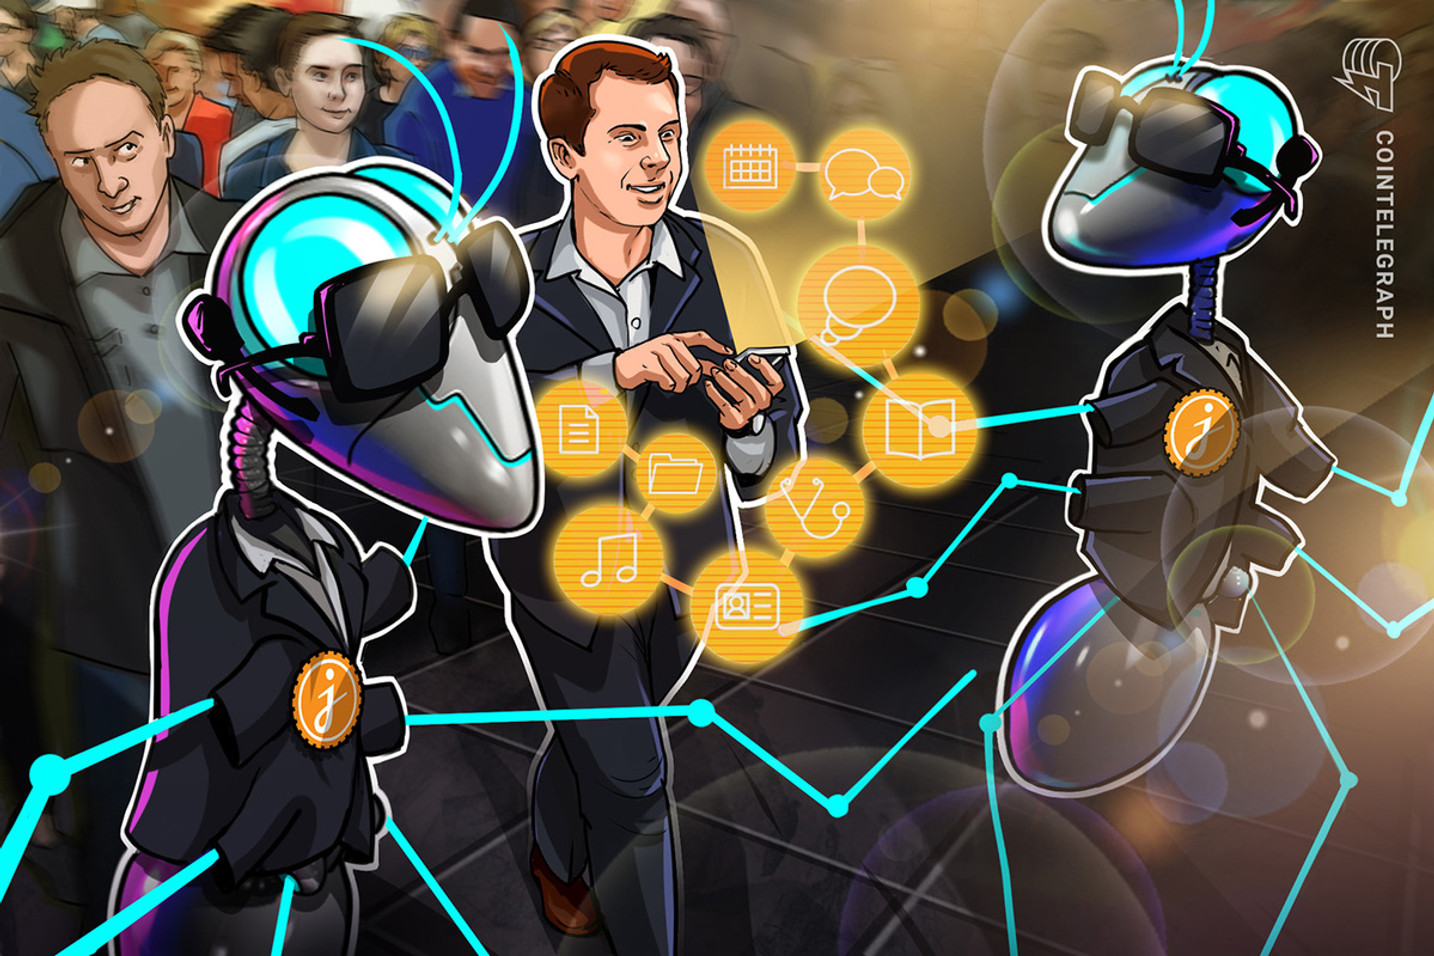 IoT to release even more private data, but blockchain can help take back control